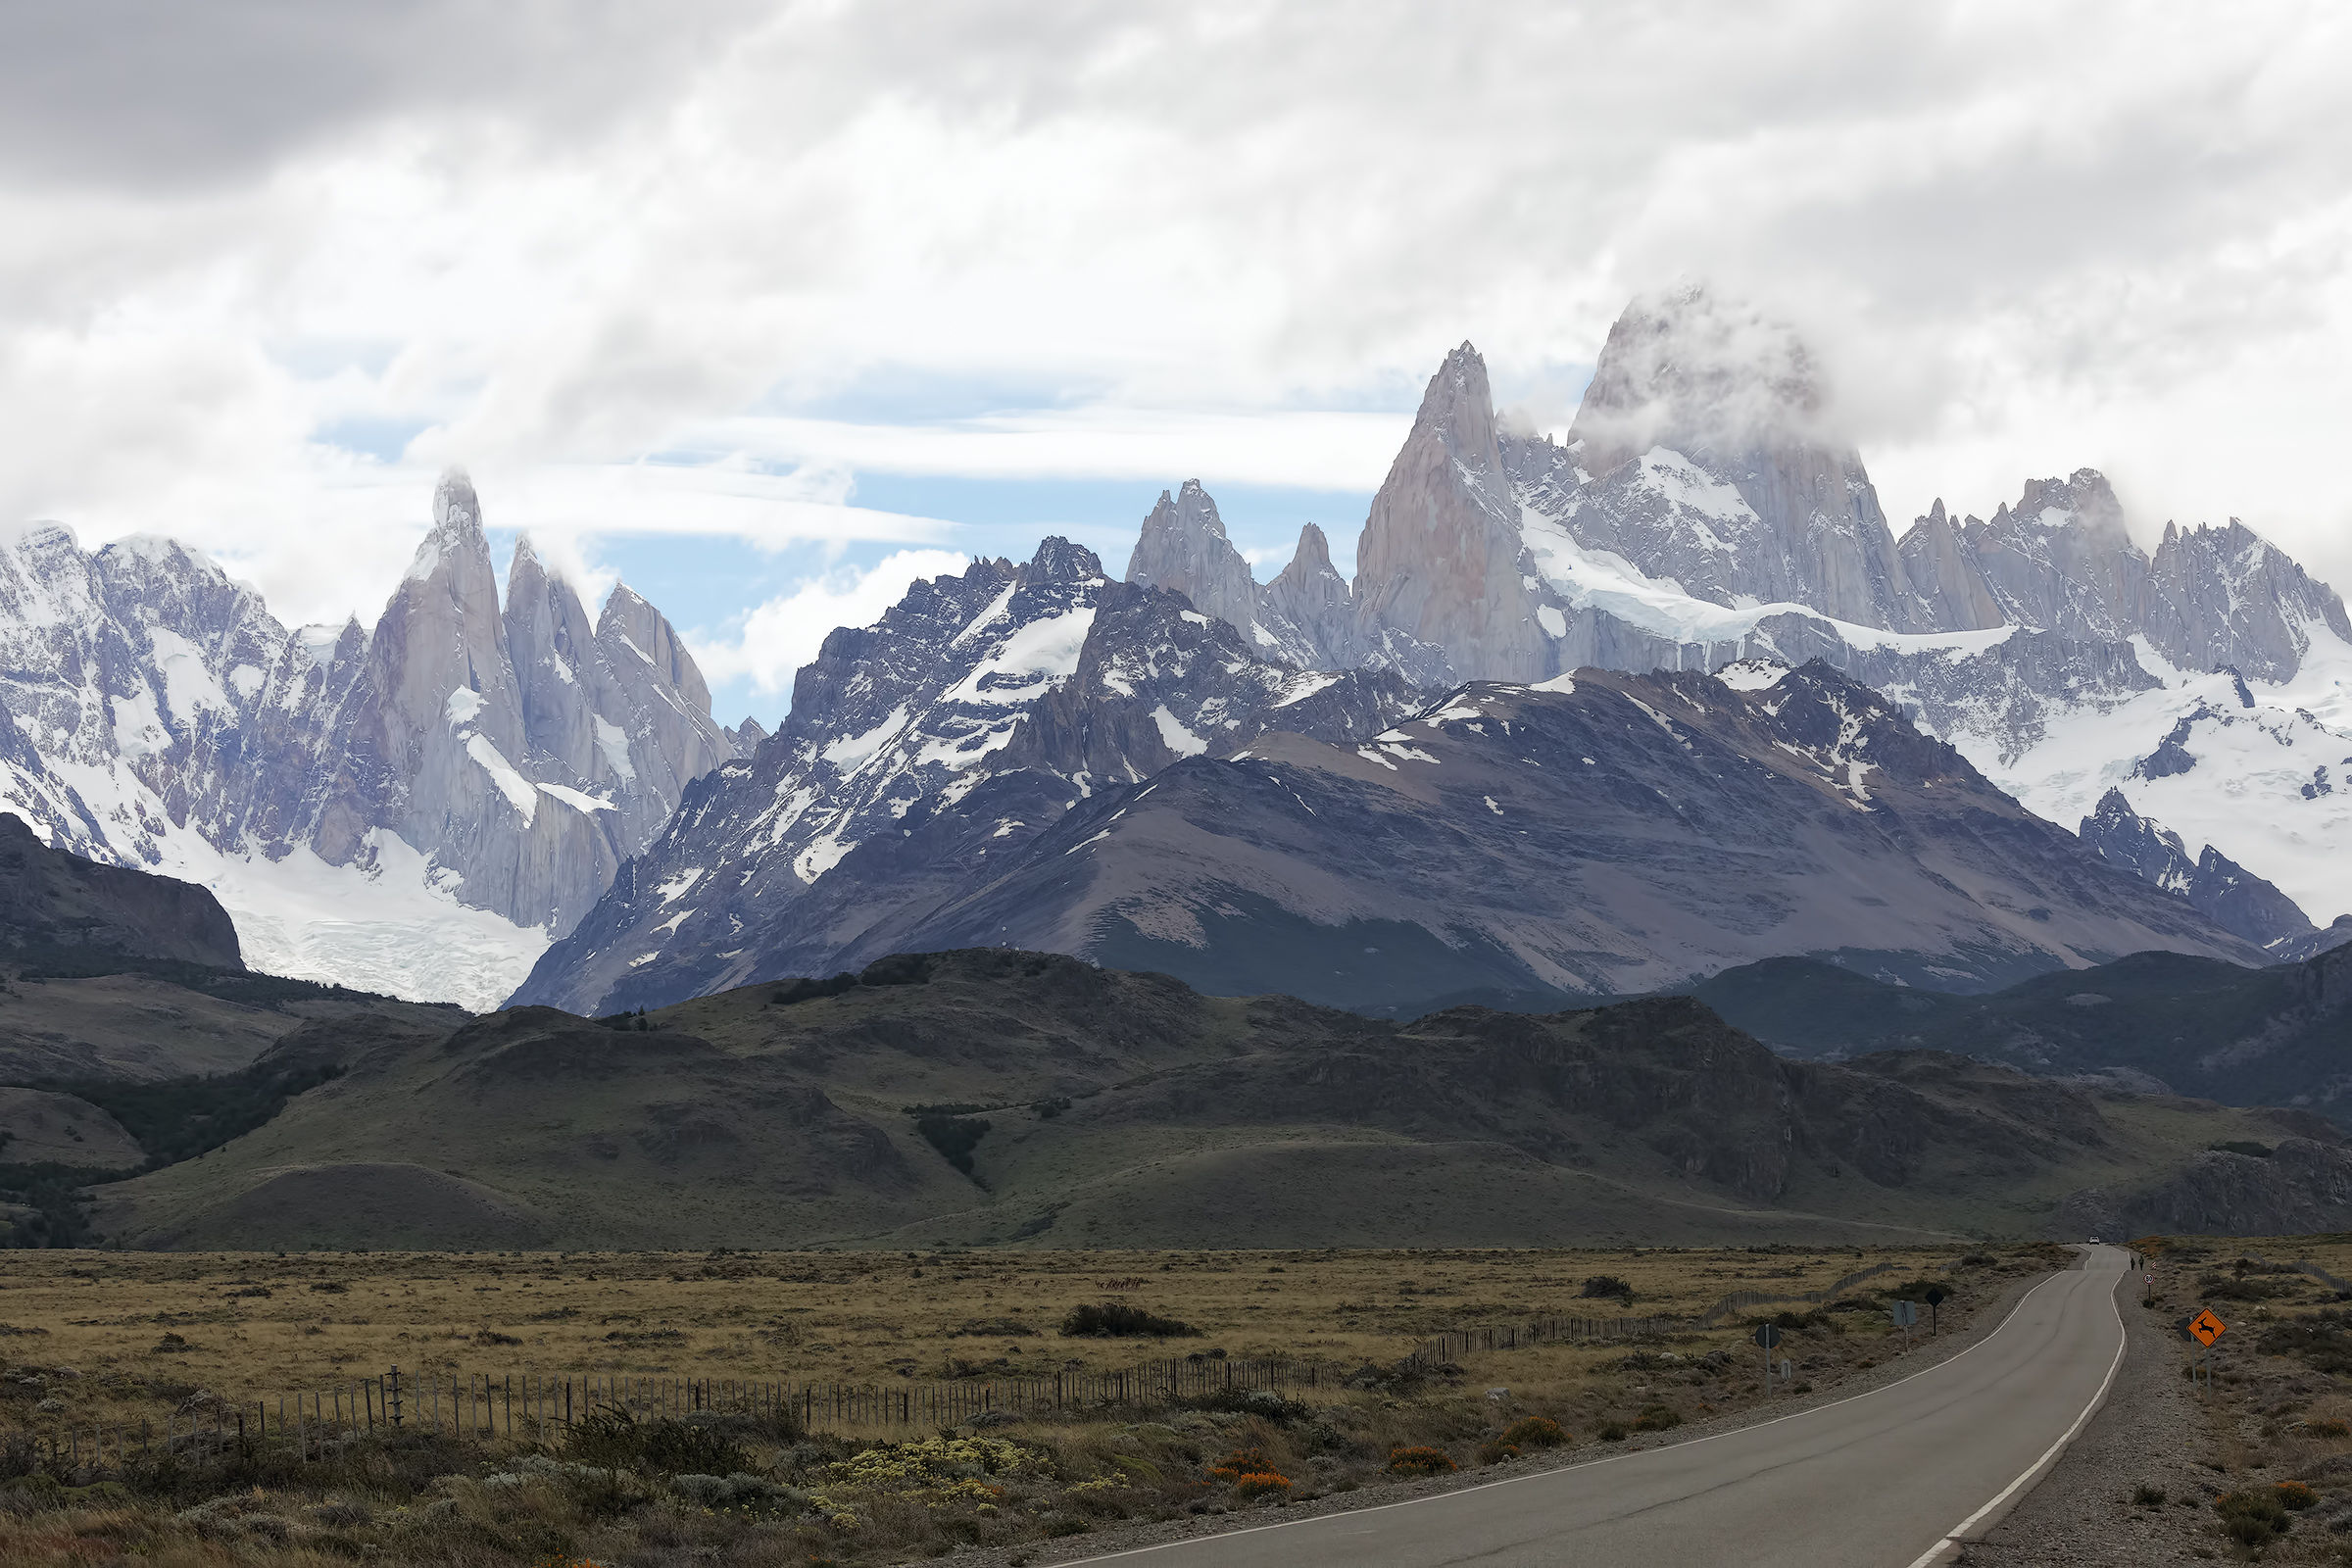 On the way to the Fitz Roy...